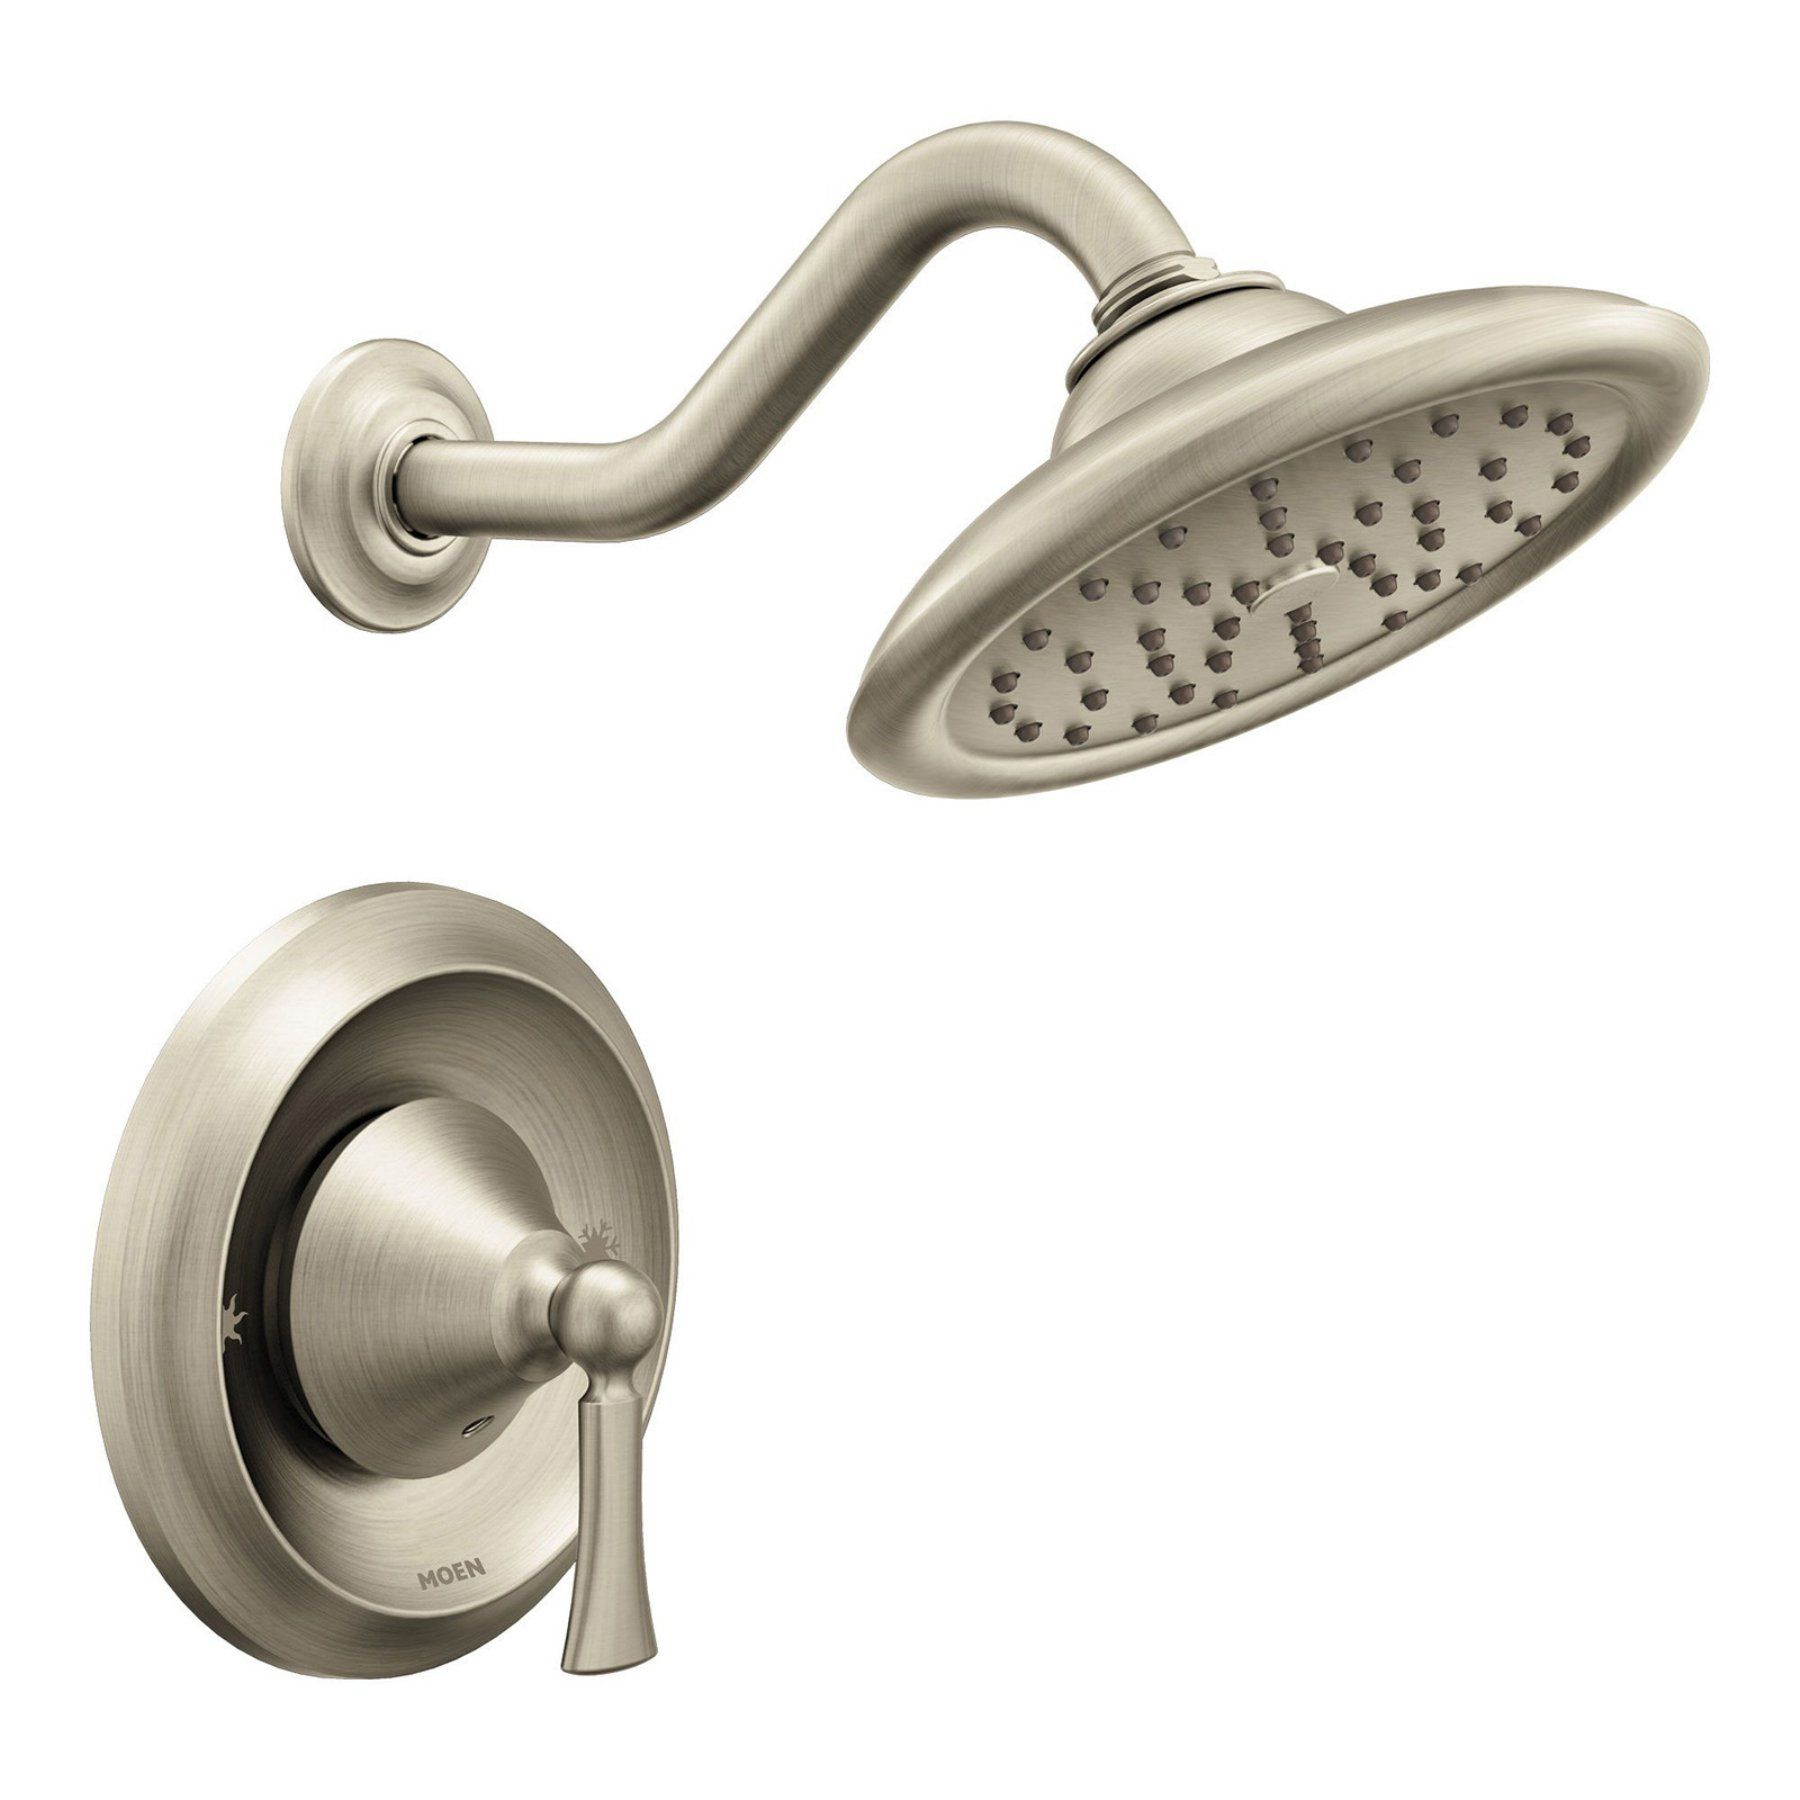 Moen Wynford T5502 Trol Shower Faucet Trim Set Shower Faucet